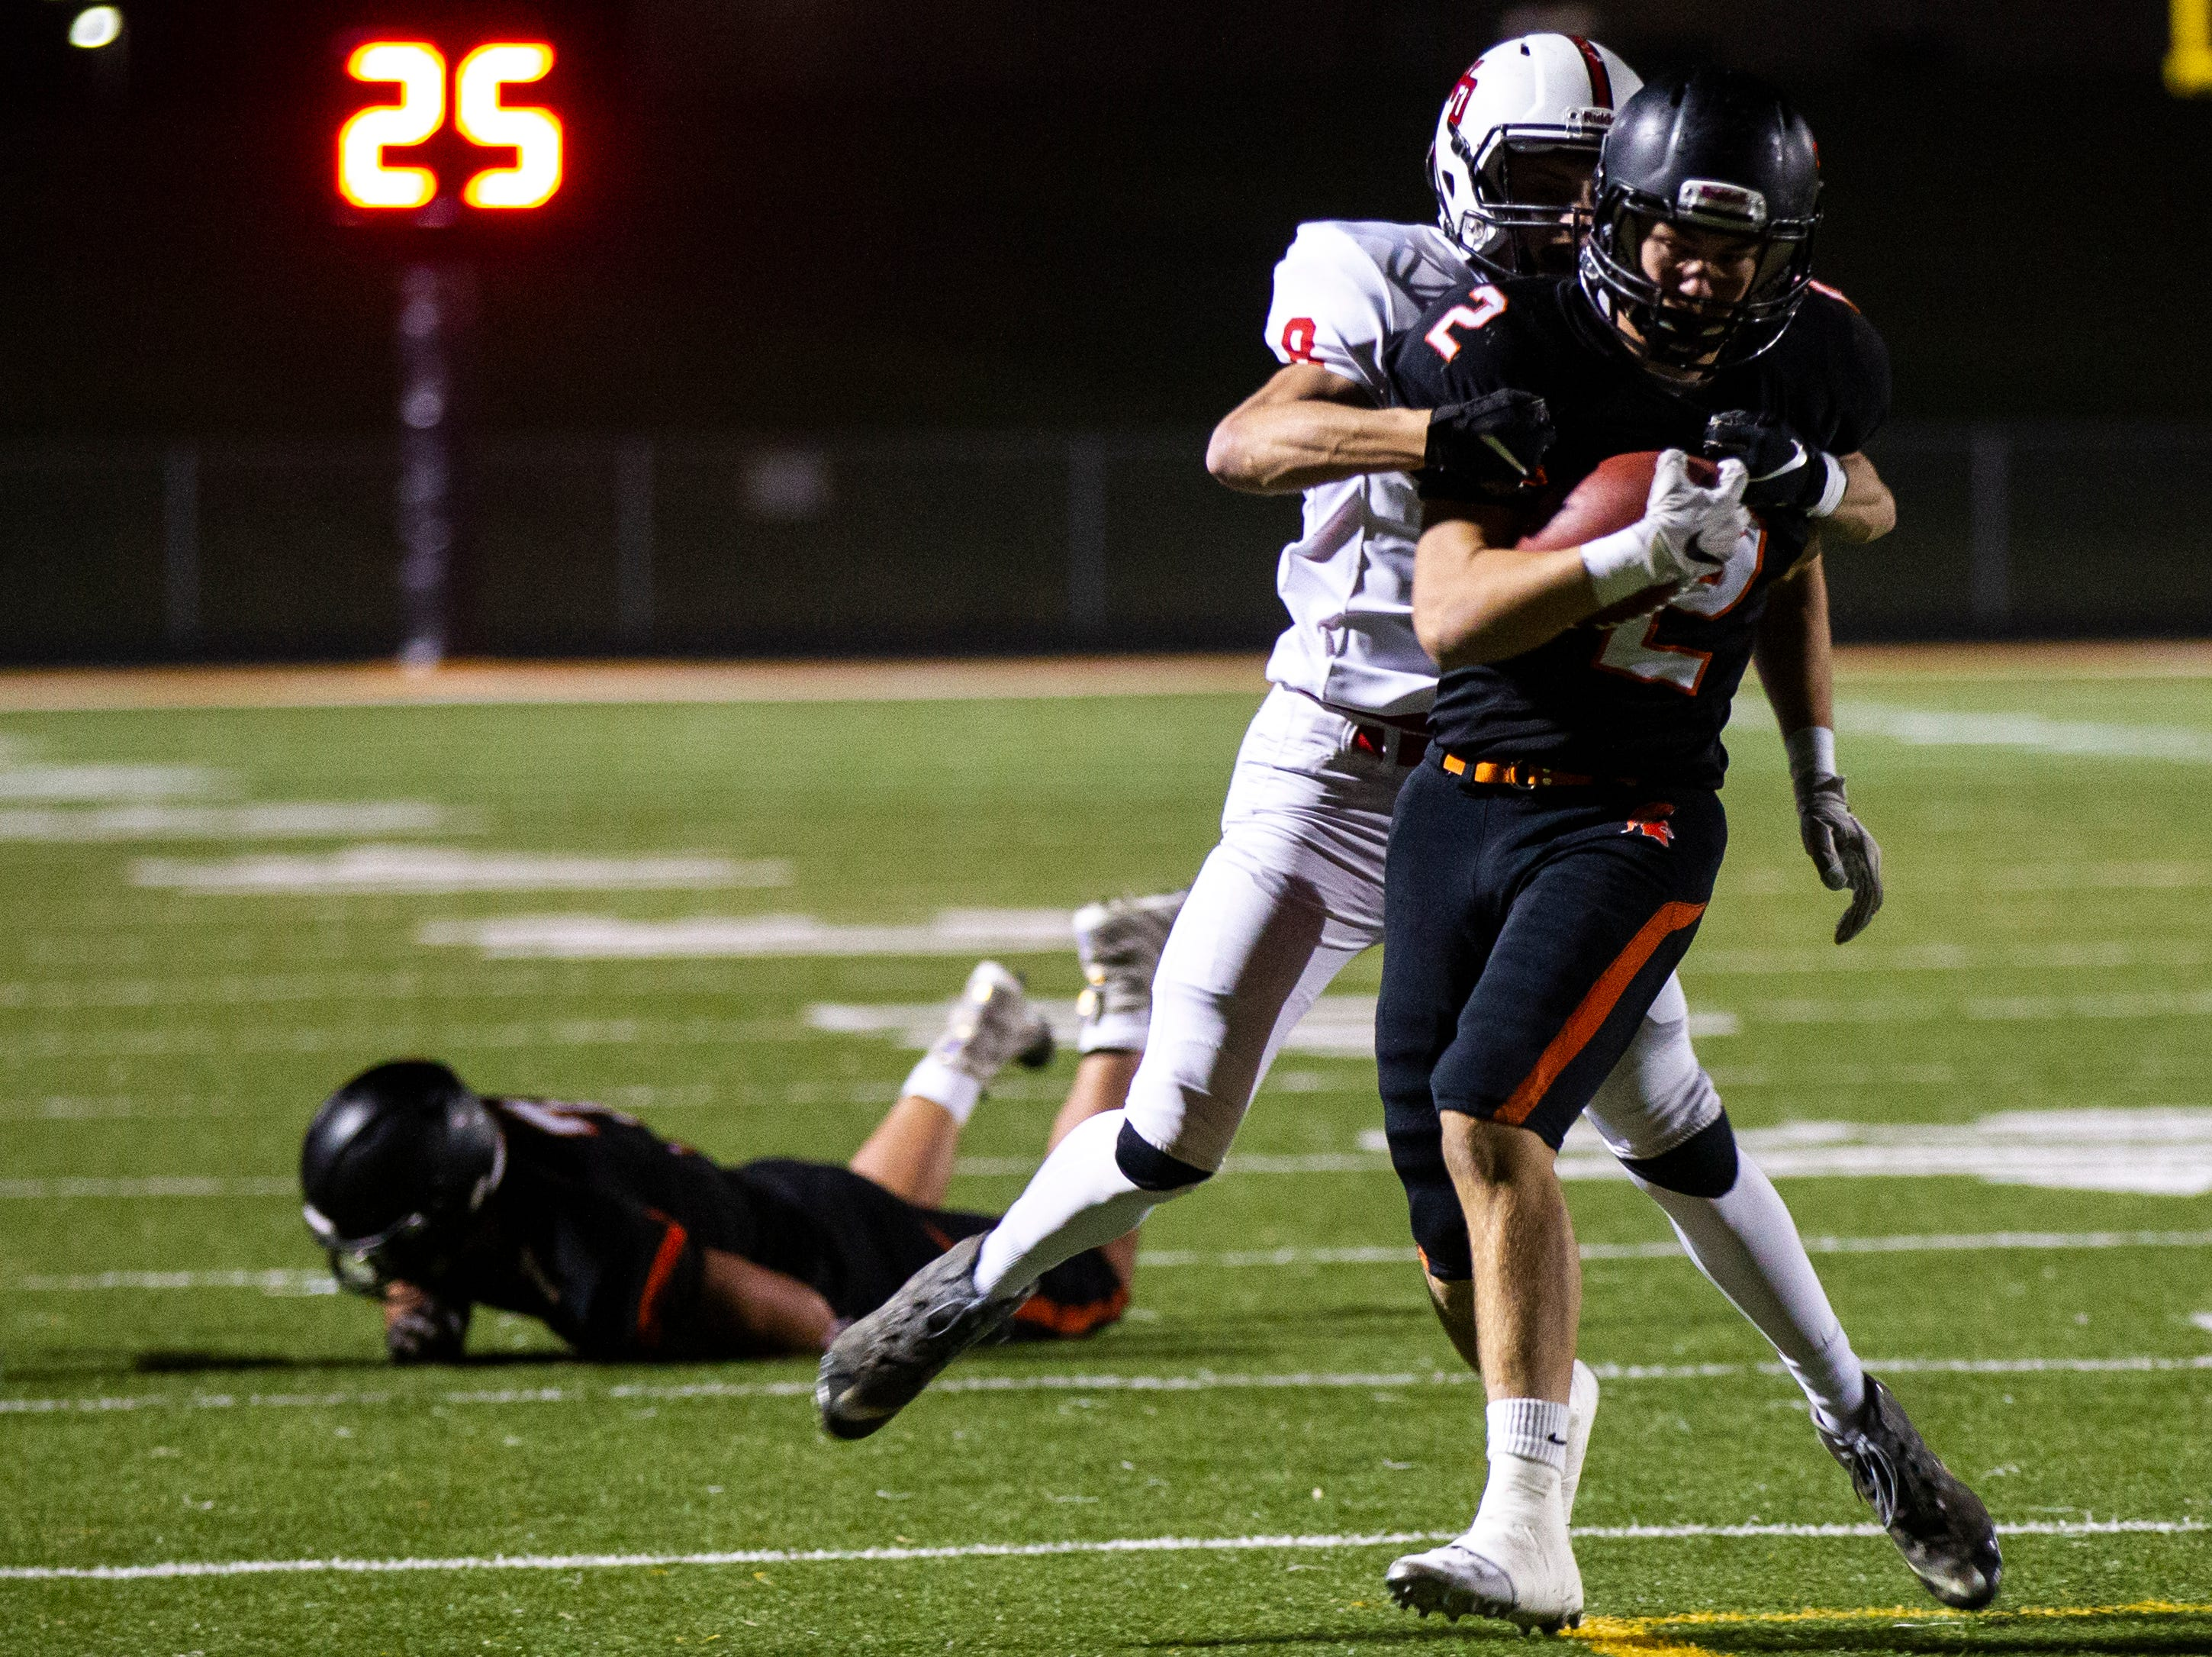 Solon's Seamus Poynton (2) pulls in a reception past Western Dubuque's Sam Goodman (8) during a Class 3A varsity first round playoff football game on Friday, Oct. 26, 2018, at Spartan Stadium in Solon, Iowa.